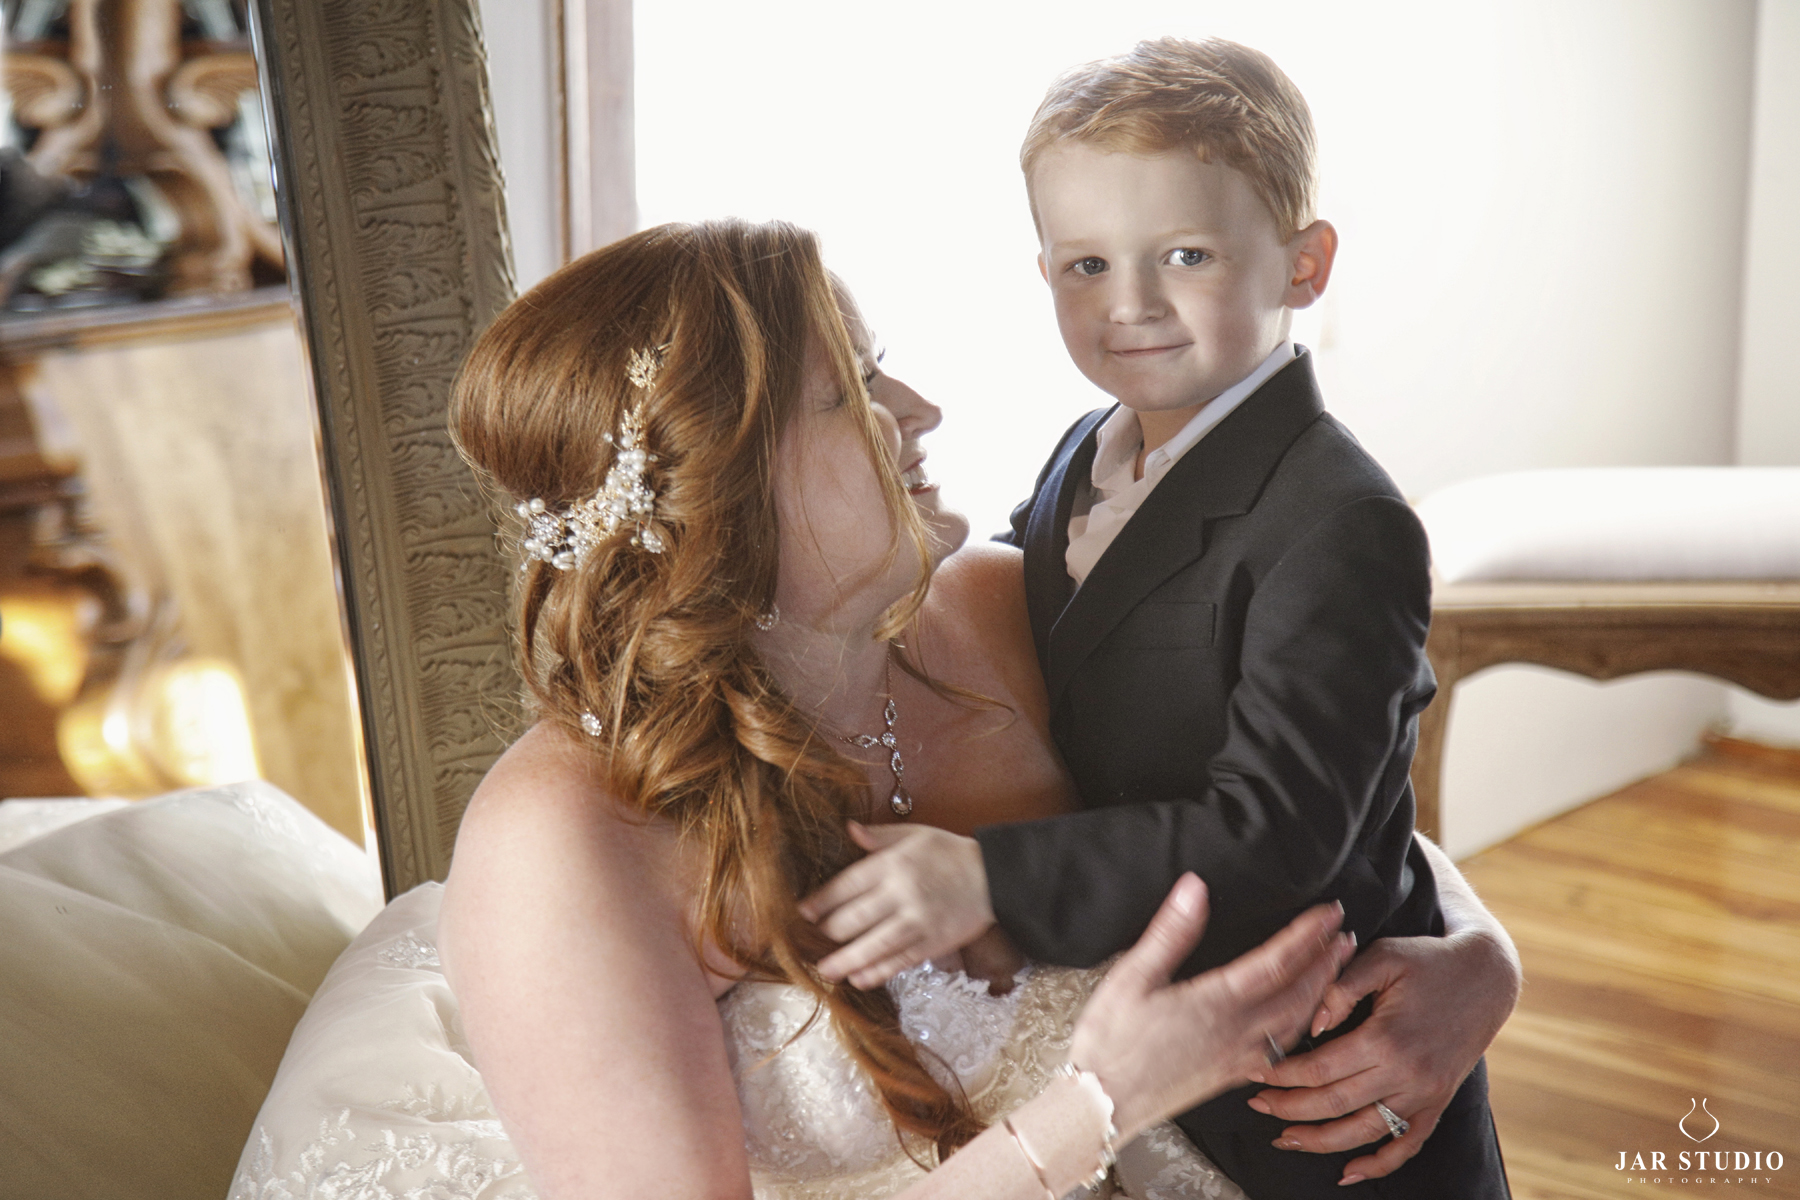 14-bride-and-ring-bearer-beautiful-wedding-pictures-jarstudio.JPG